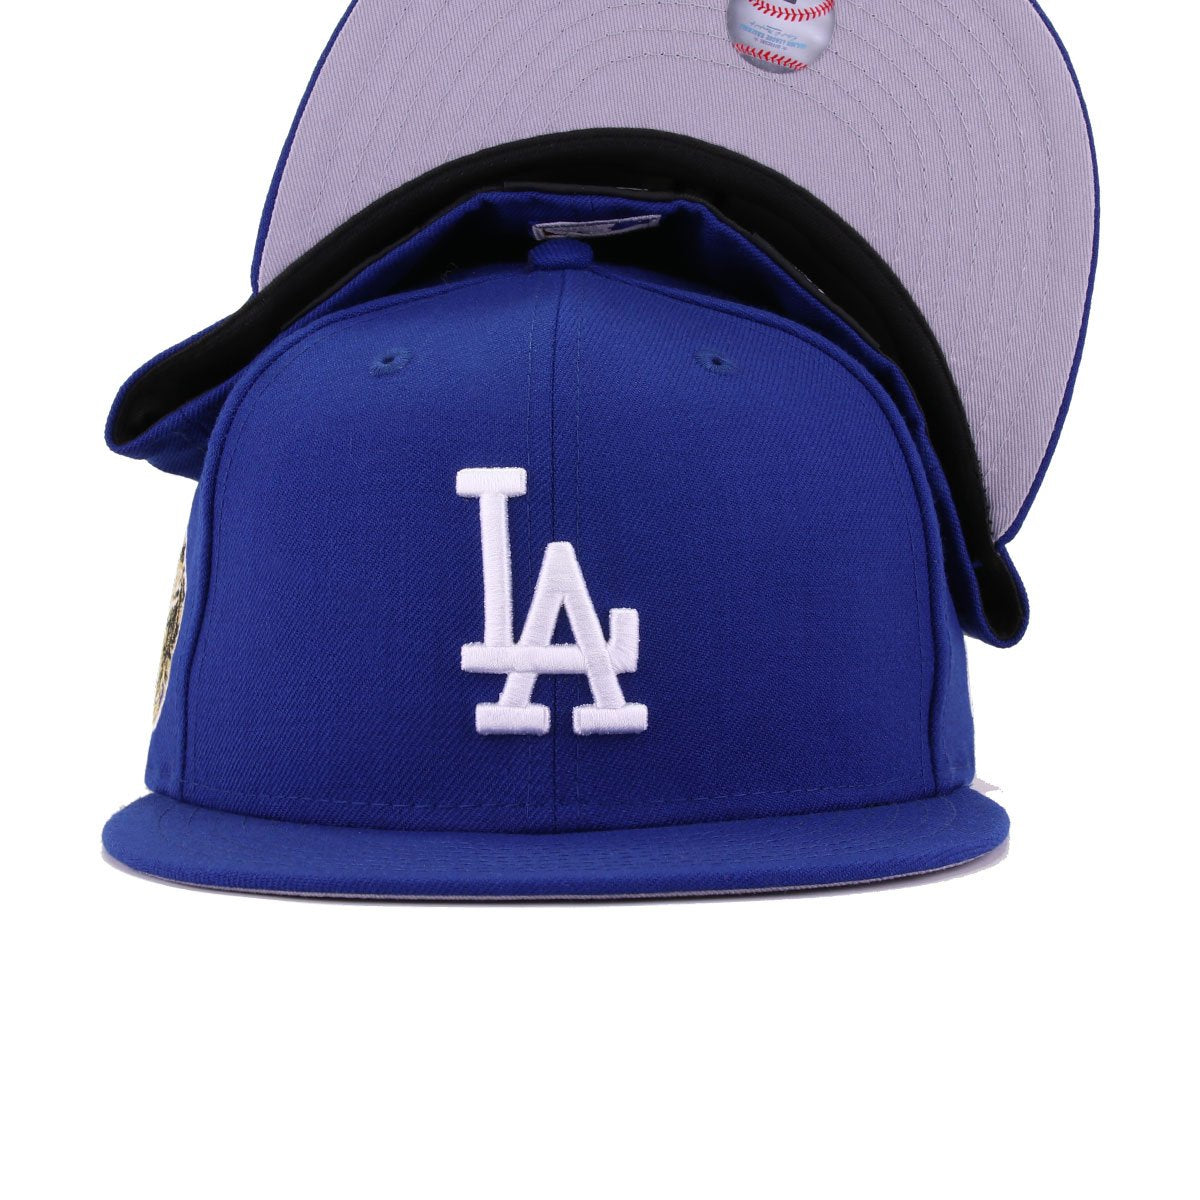 Los Angeles Dodgers Light Royal Blue 1963 World Series Cooperstown New